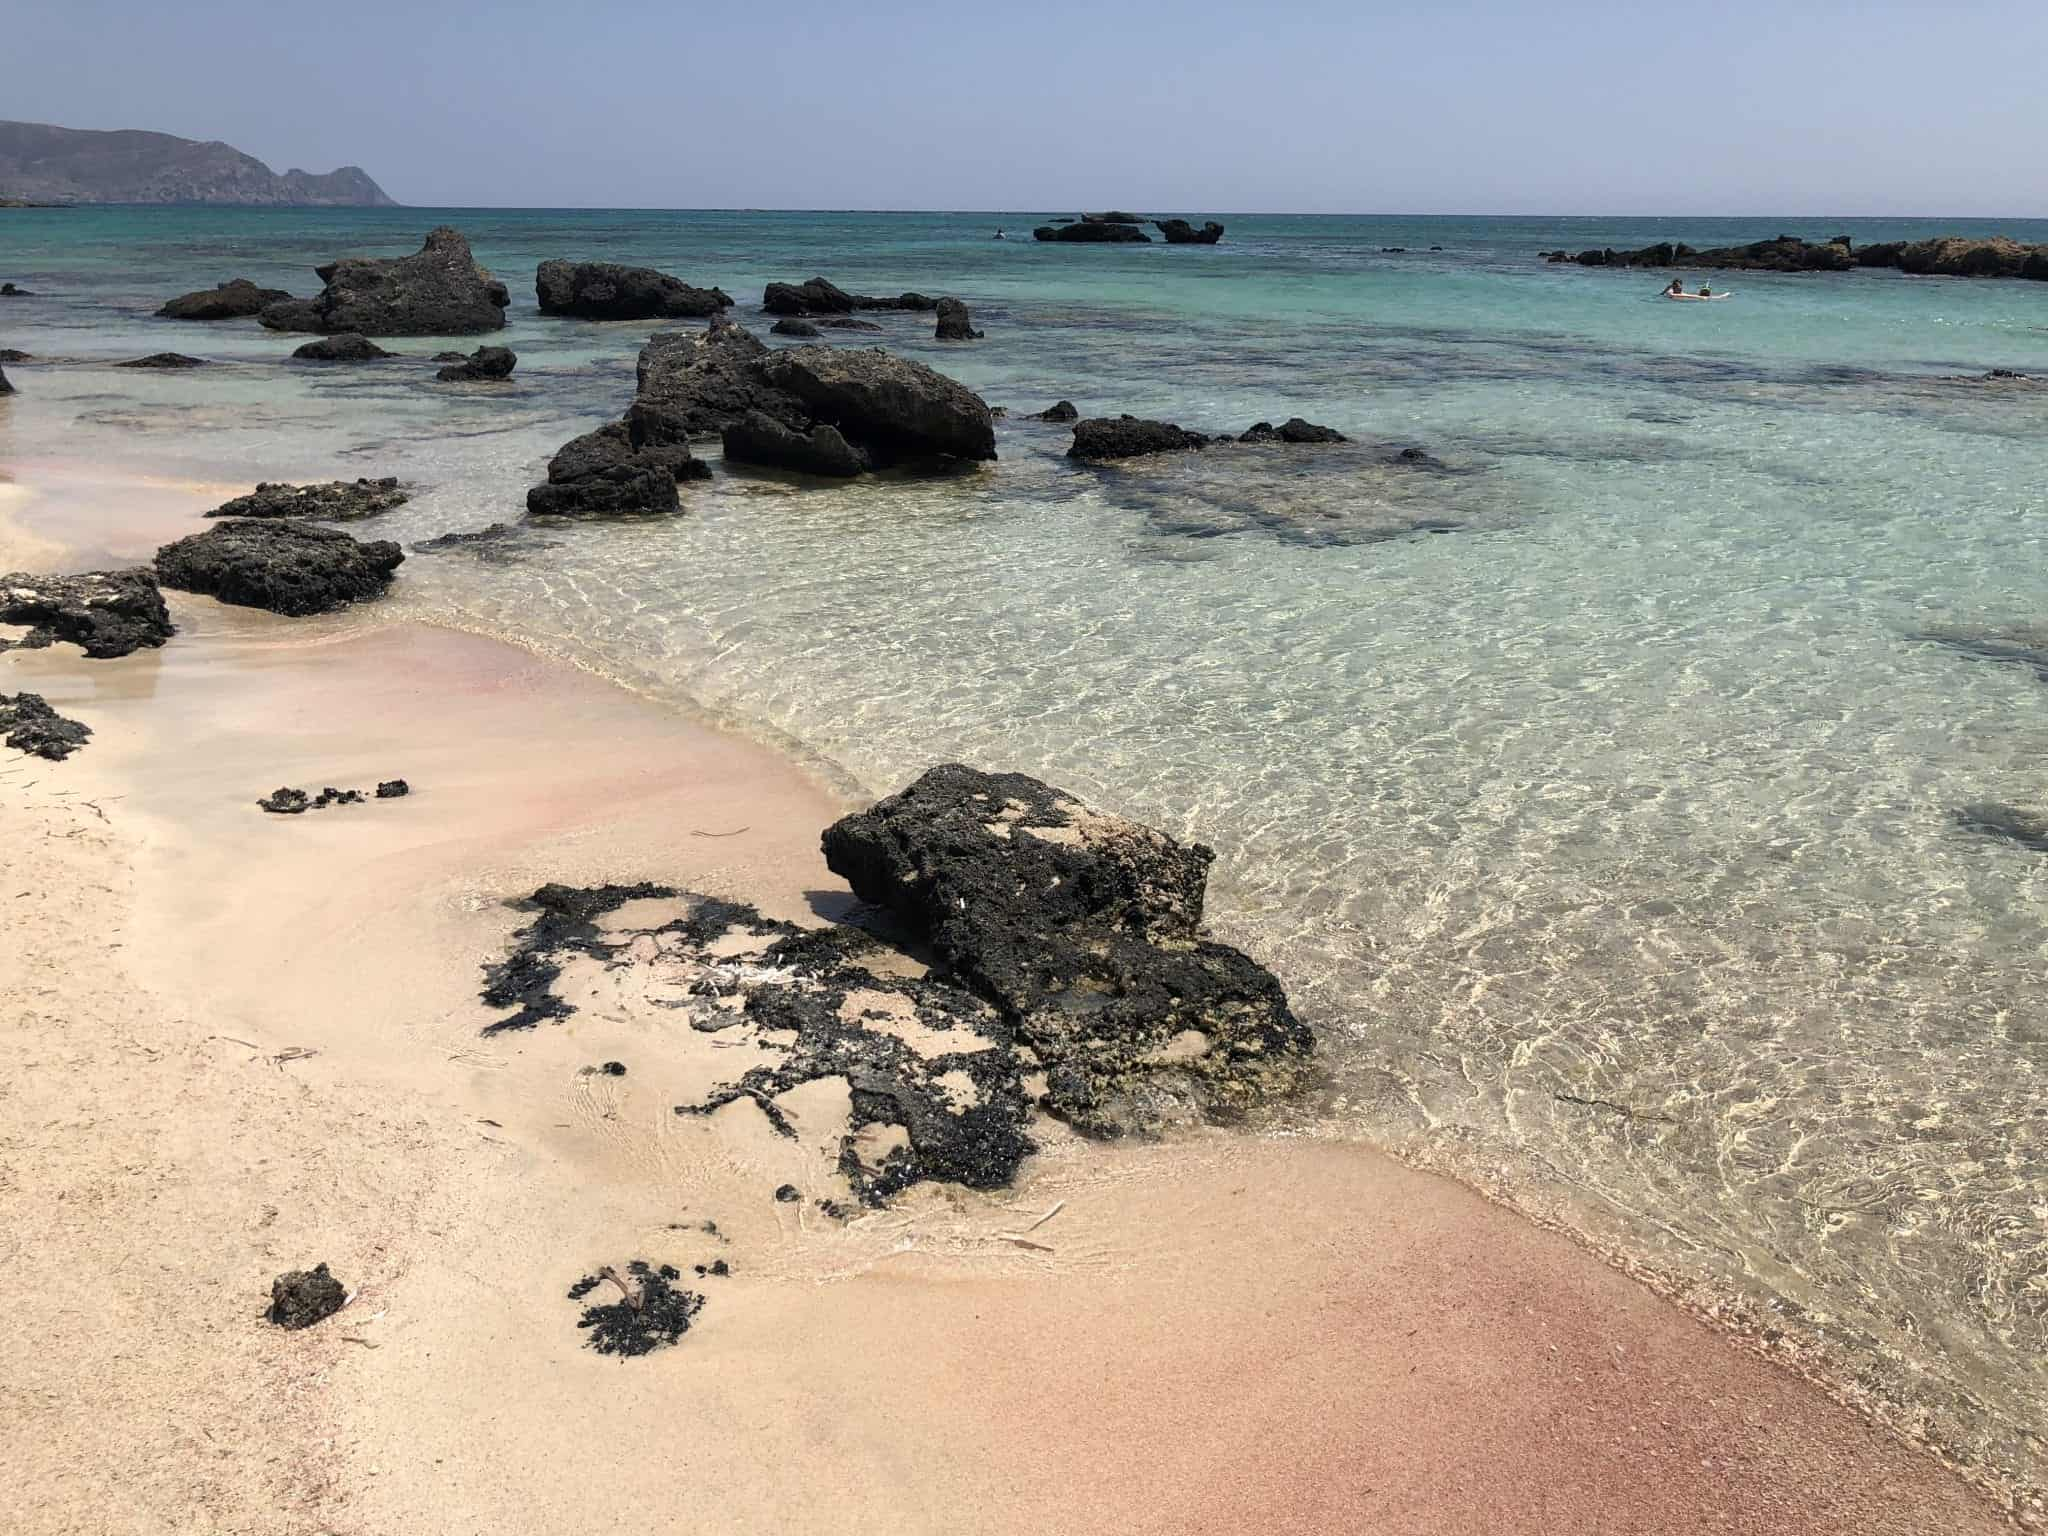 Elafonissi Beach Travel Guide To Pink Beach Crete World